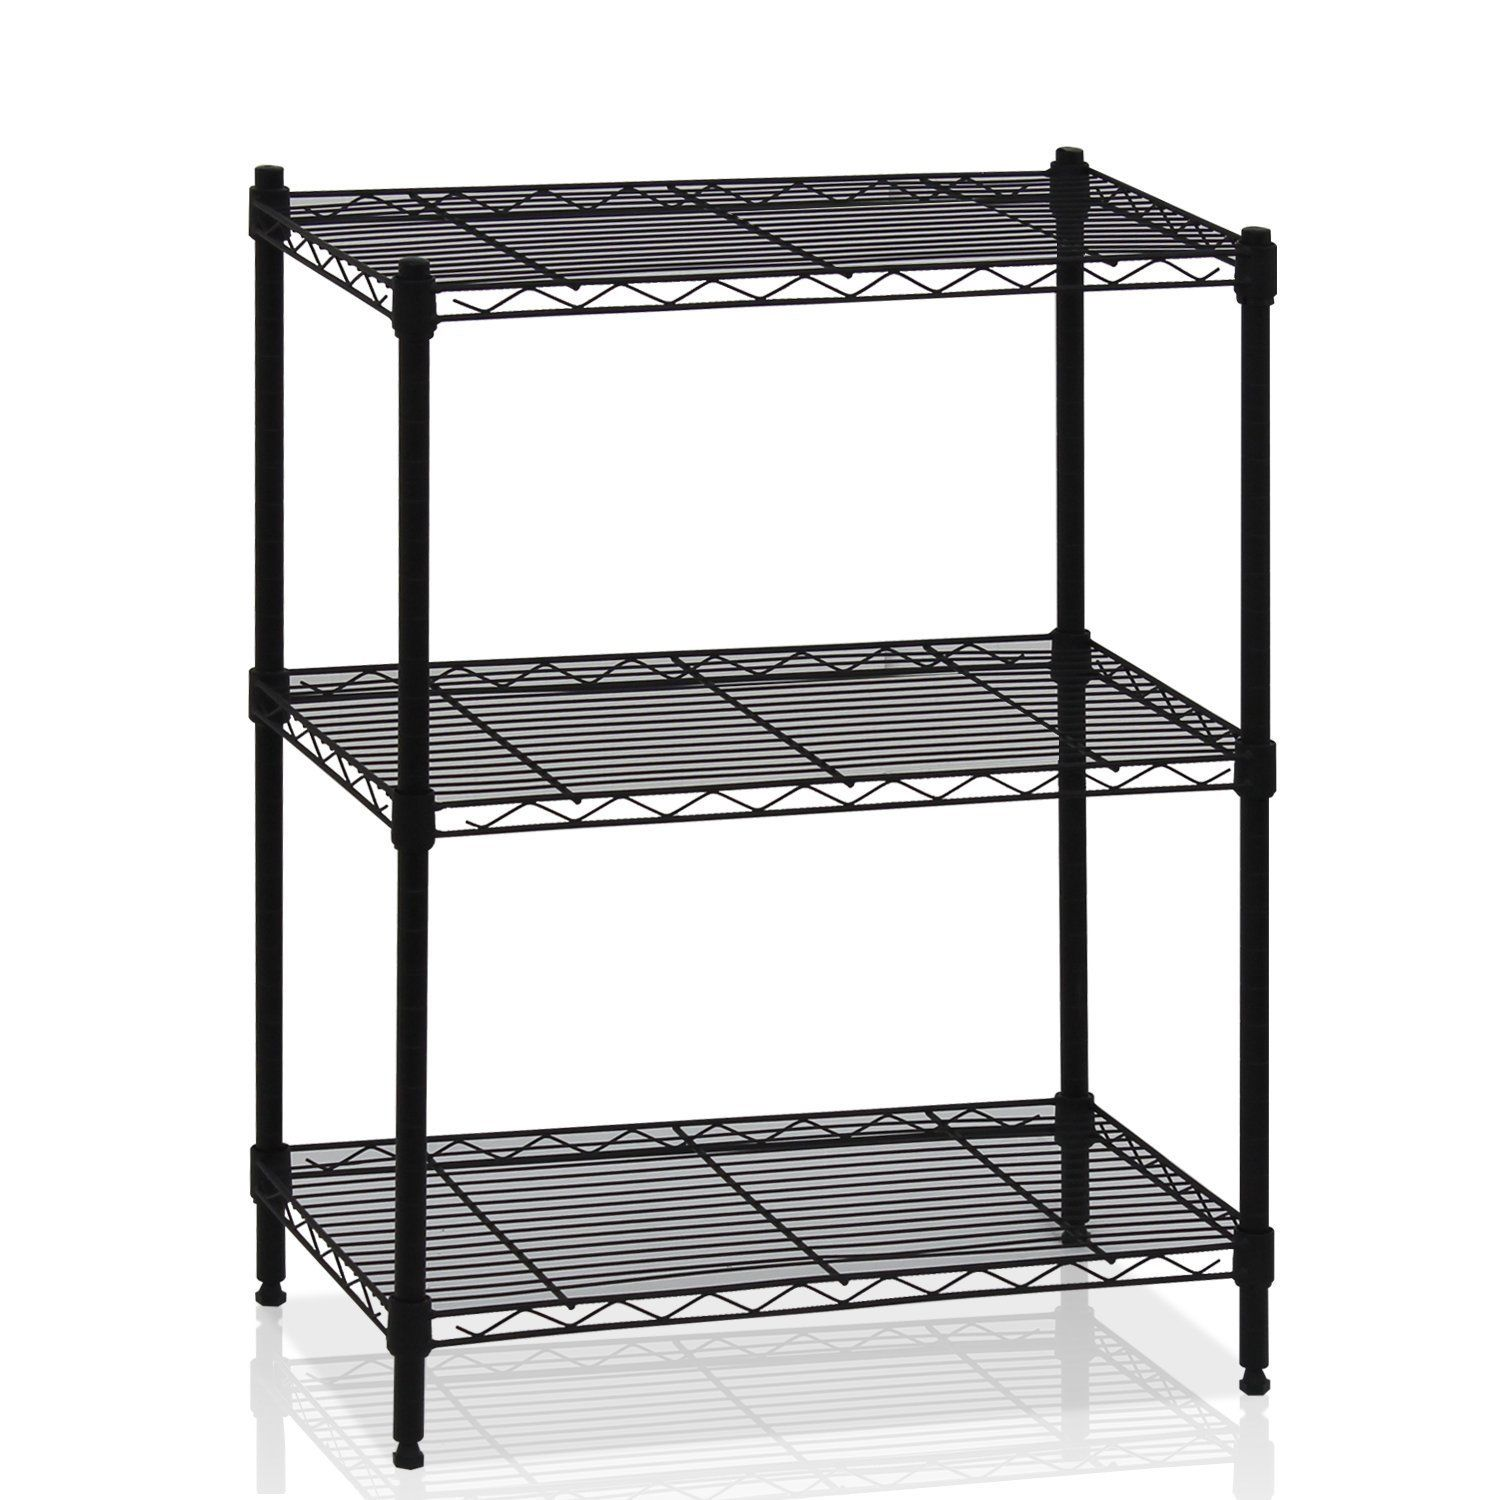 Kitchen Shelf Metal: 3 Tier Wire Shelving Rack Shelf Unit Garage Kitchen